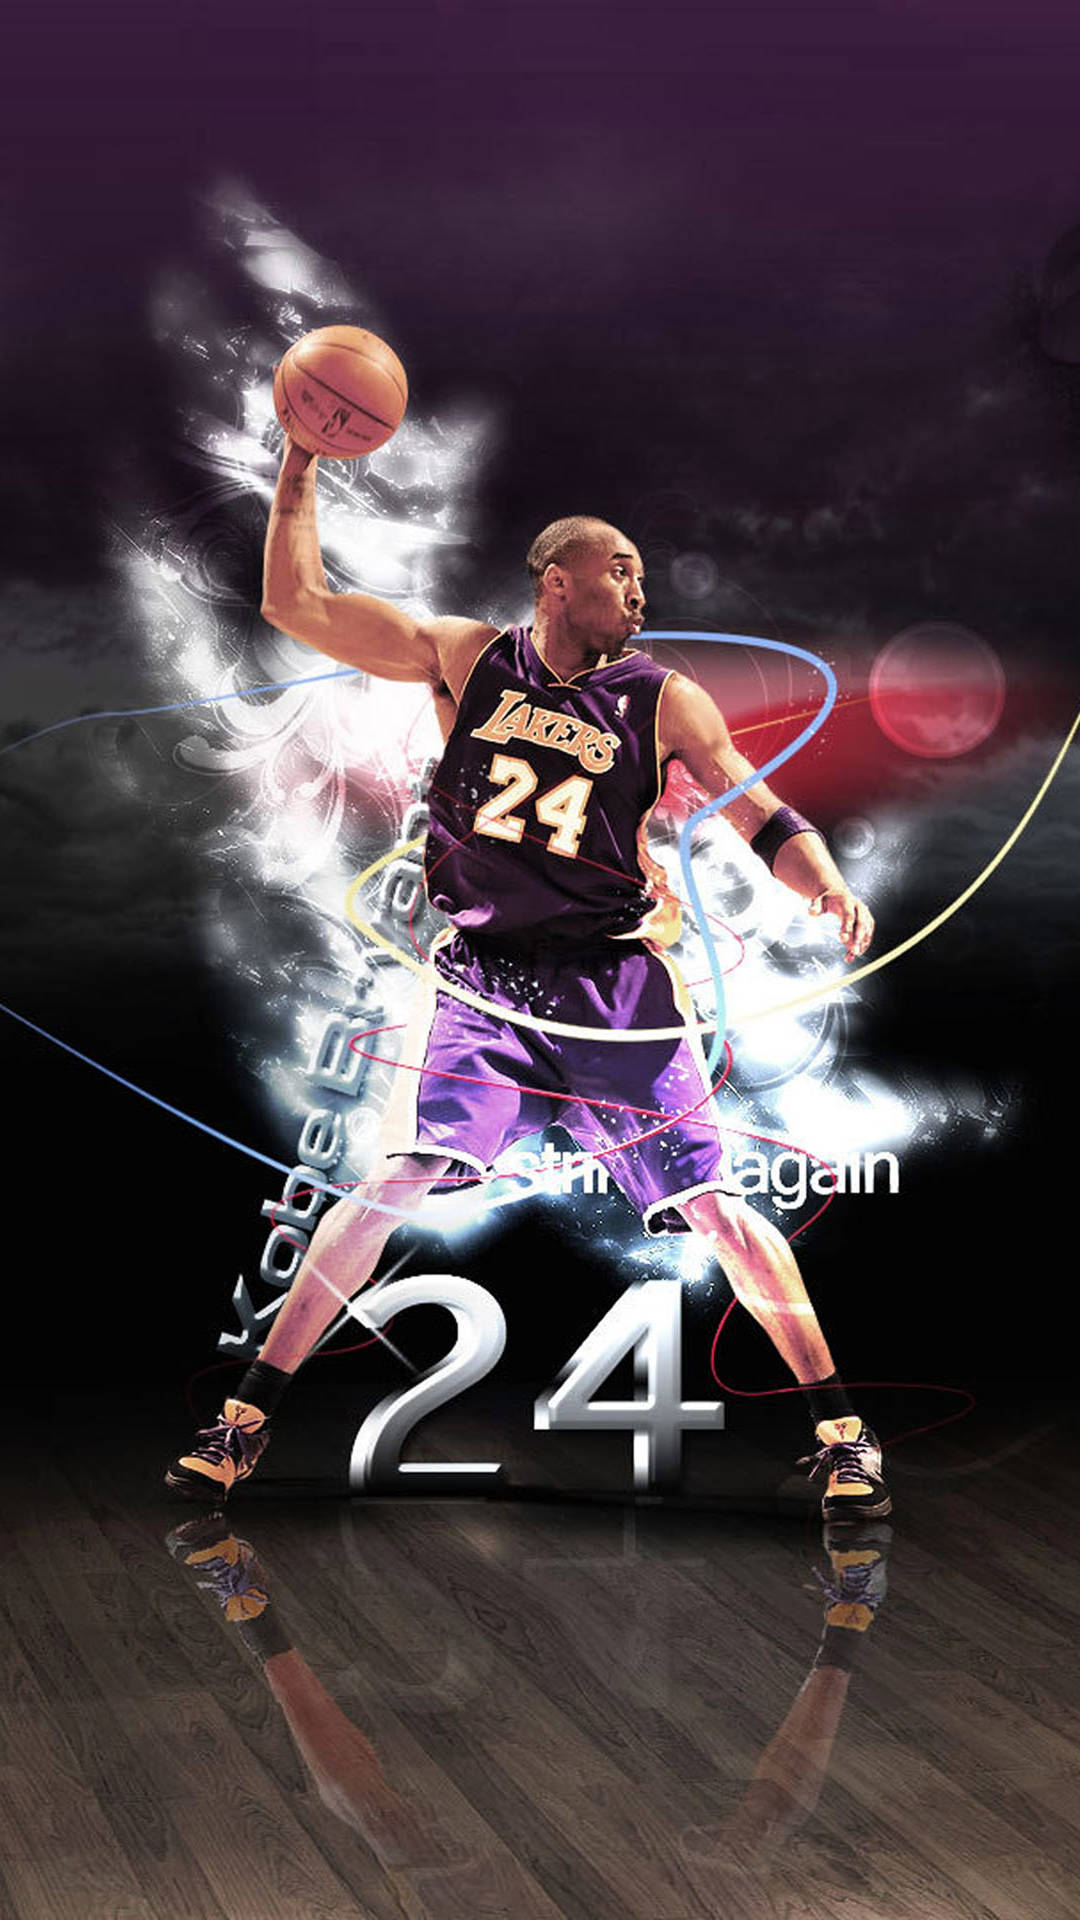 30+ Kobe Bryant Wallpapers HD for iPhone 2016 - Apple Lives